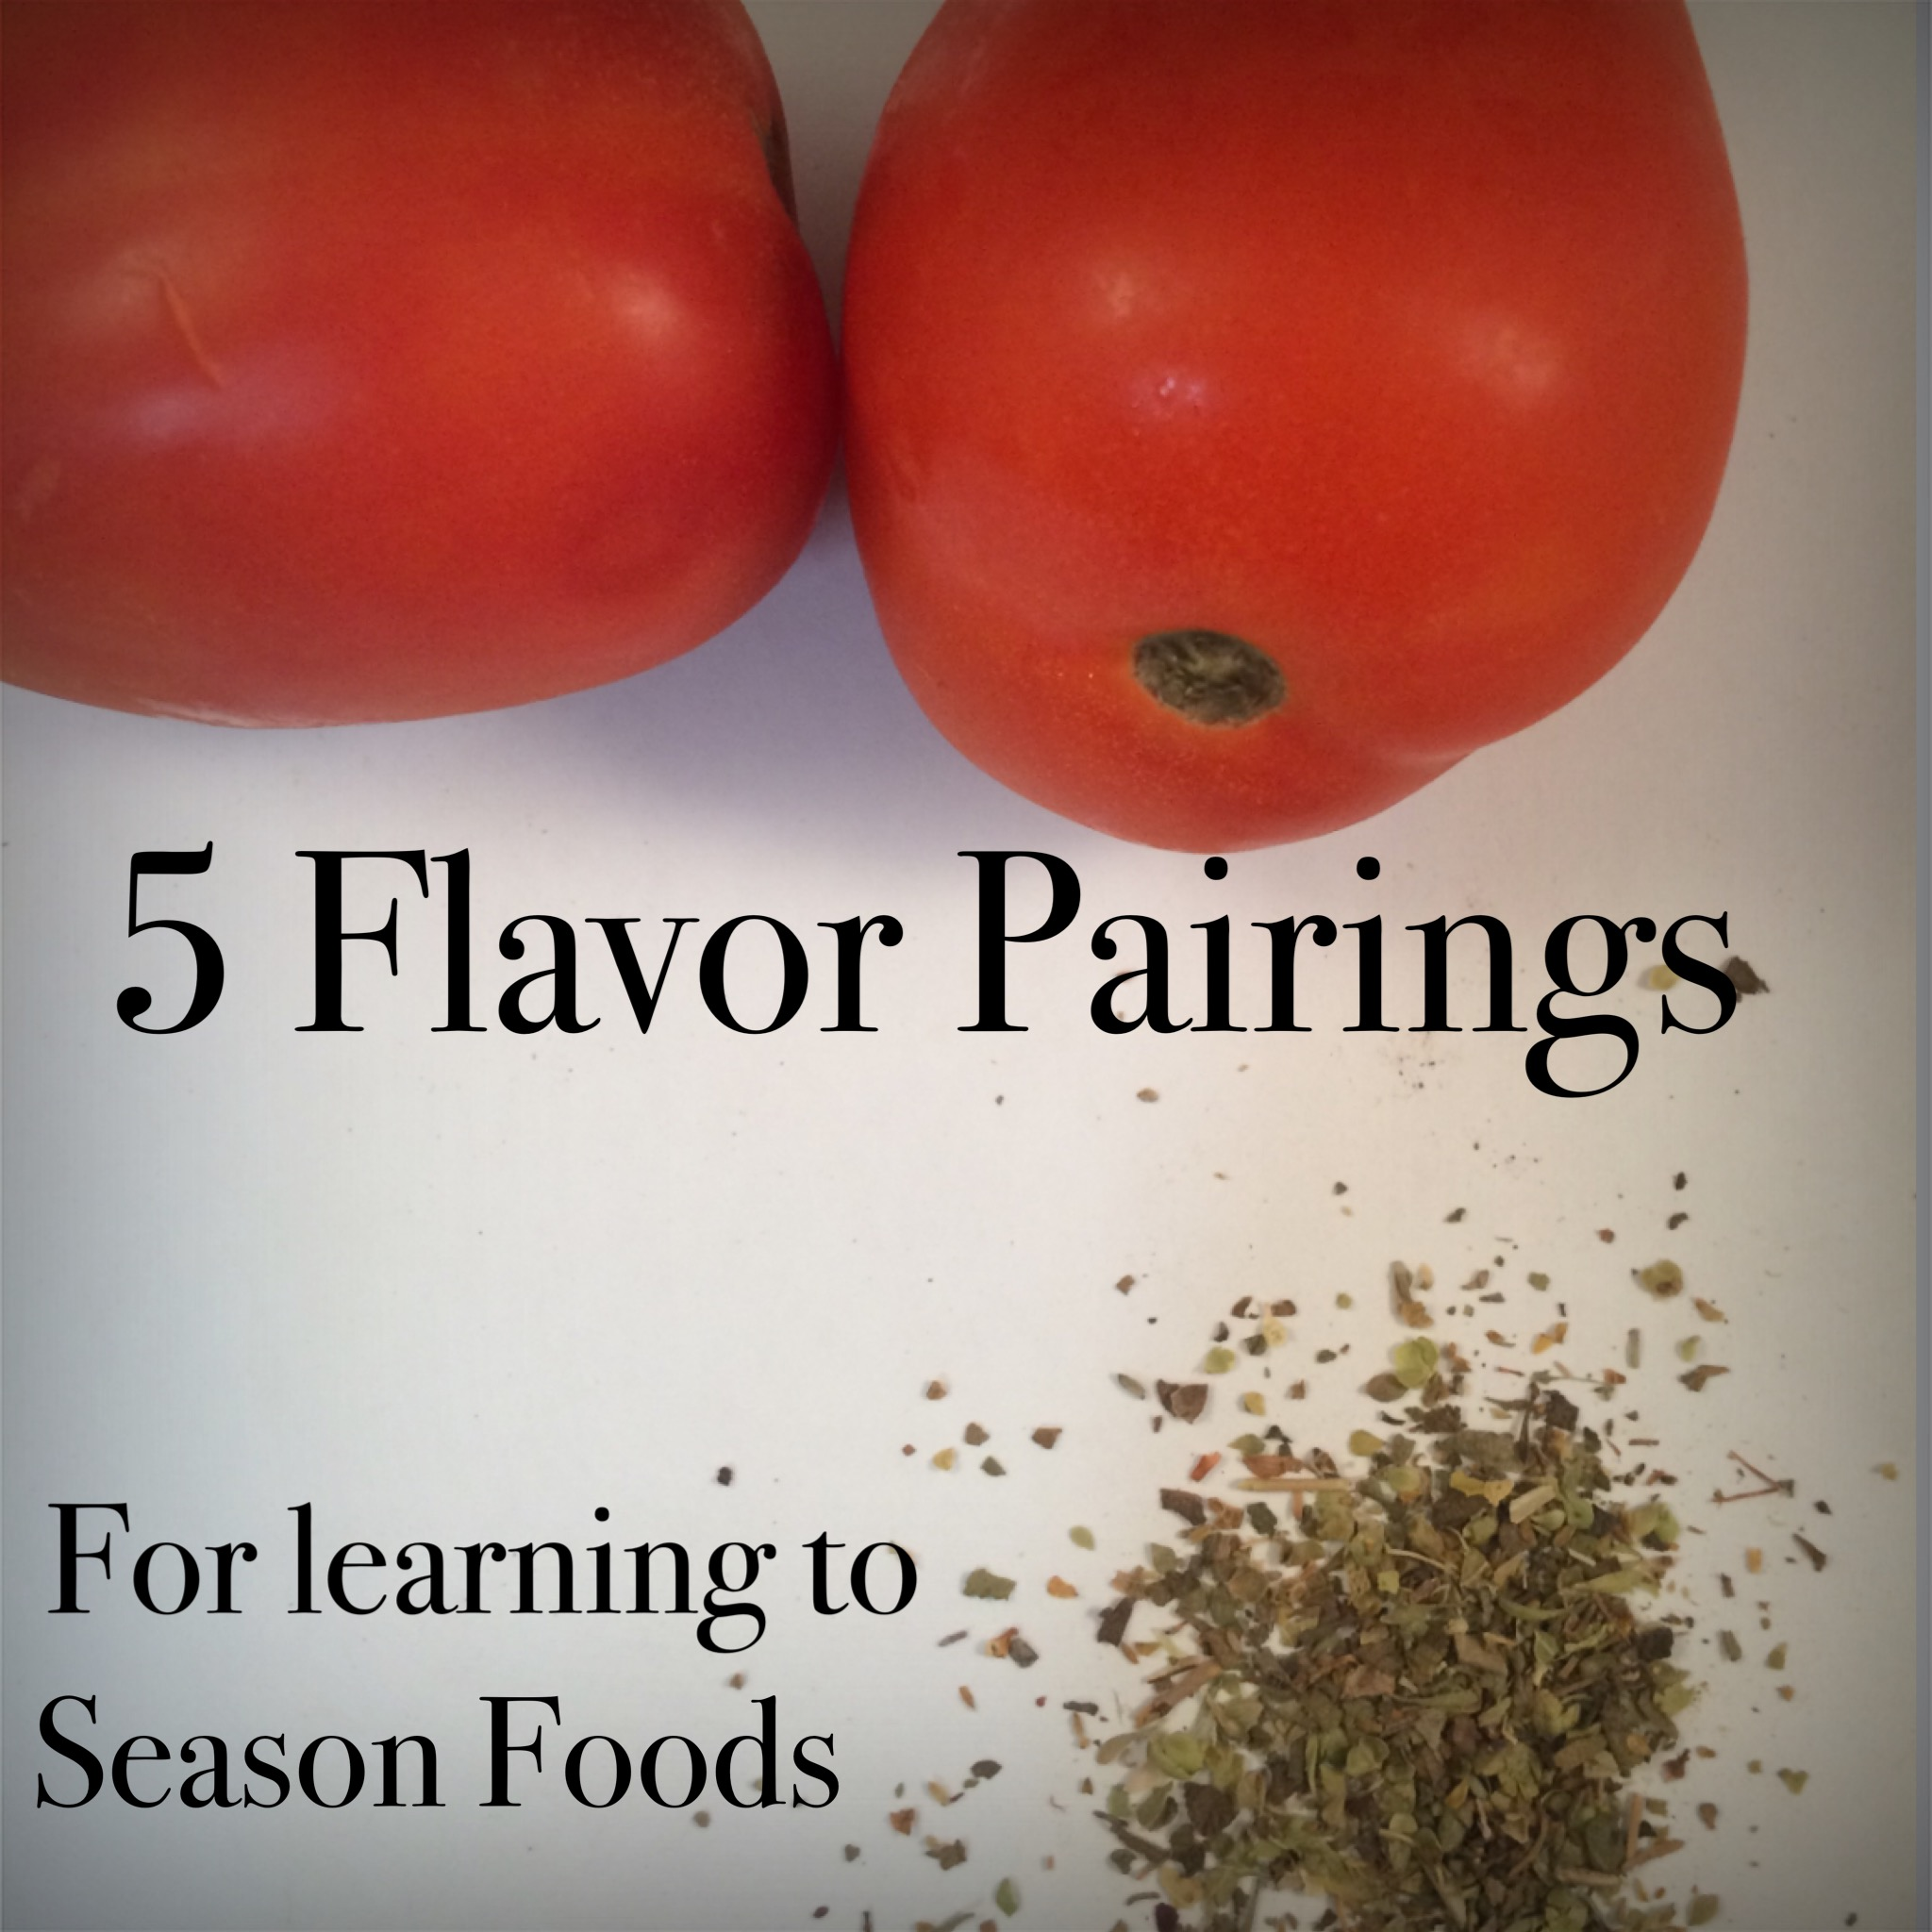 5 Flavor Pairings For Learning How to Season Foods